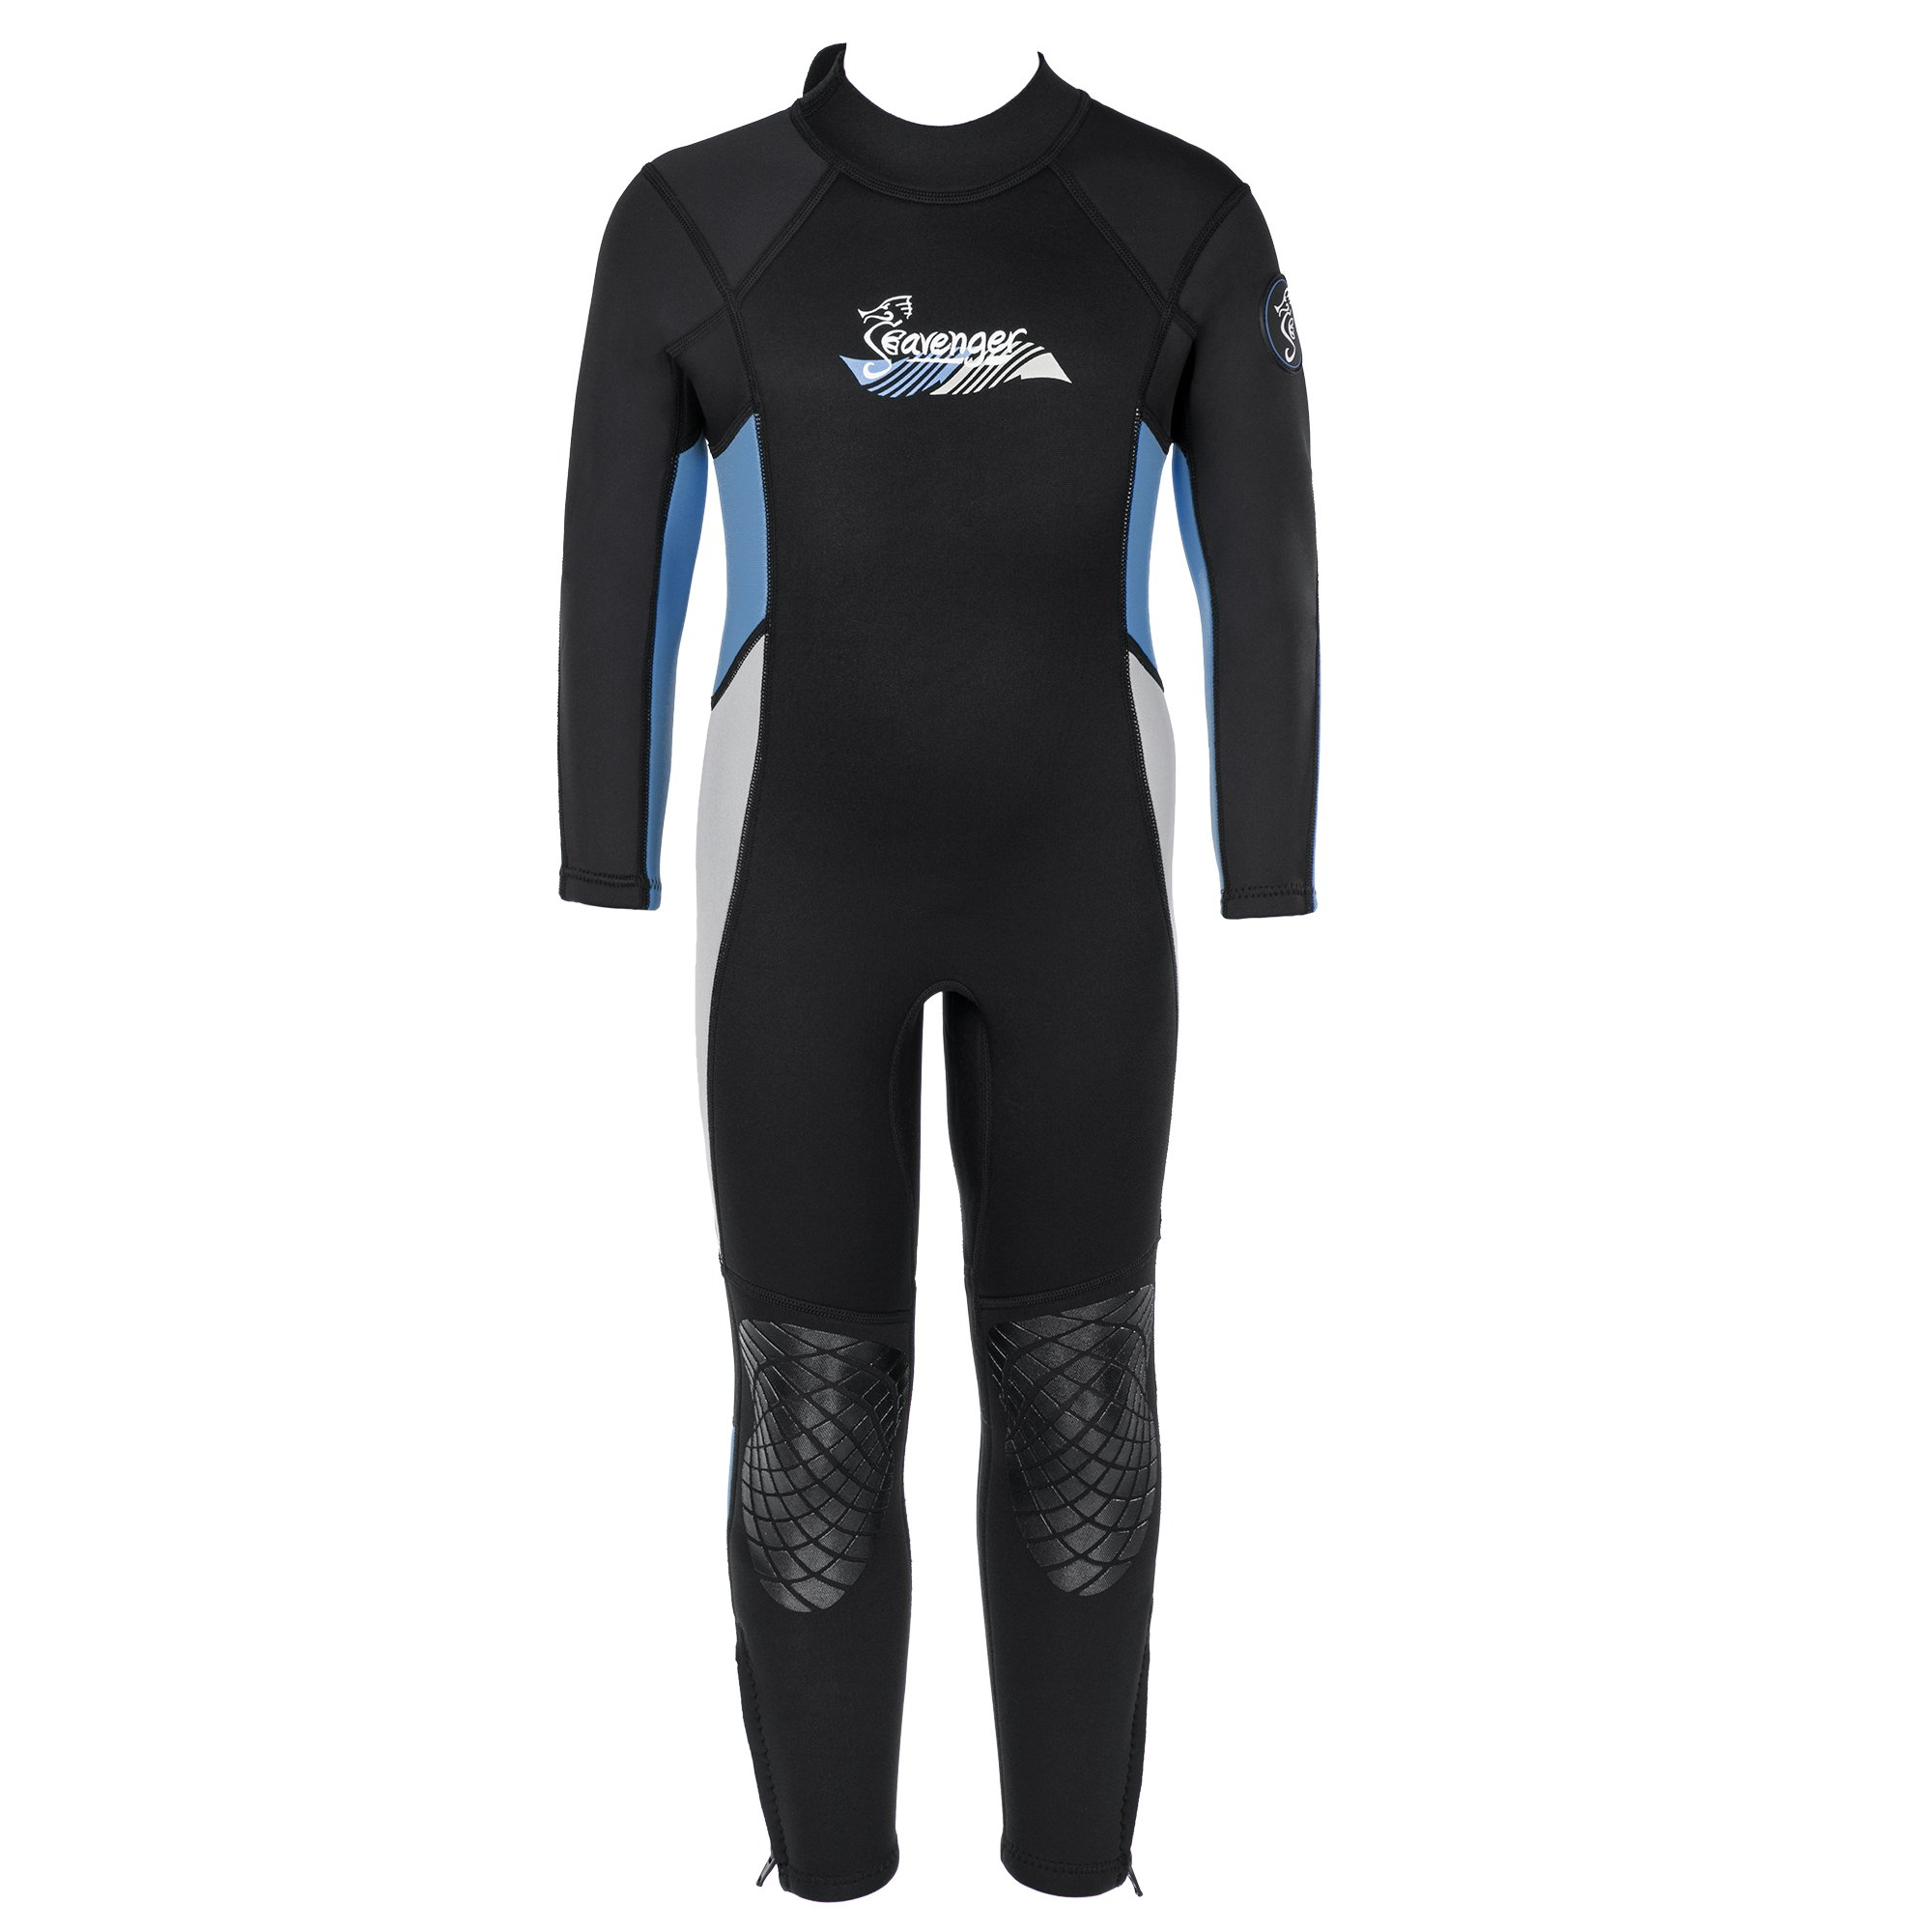 Seavenger 3mm Kids Full Body Wetsuit with Knee Pads for Surfing, Snorkeling, Swimming (Pearl Blue, 14) by Seavenger